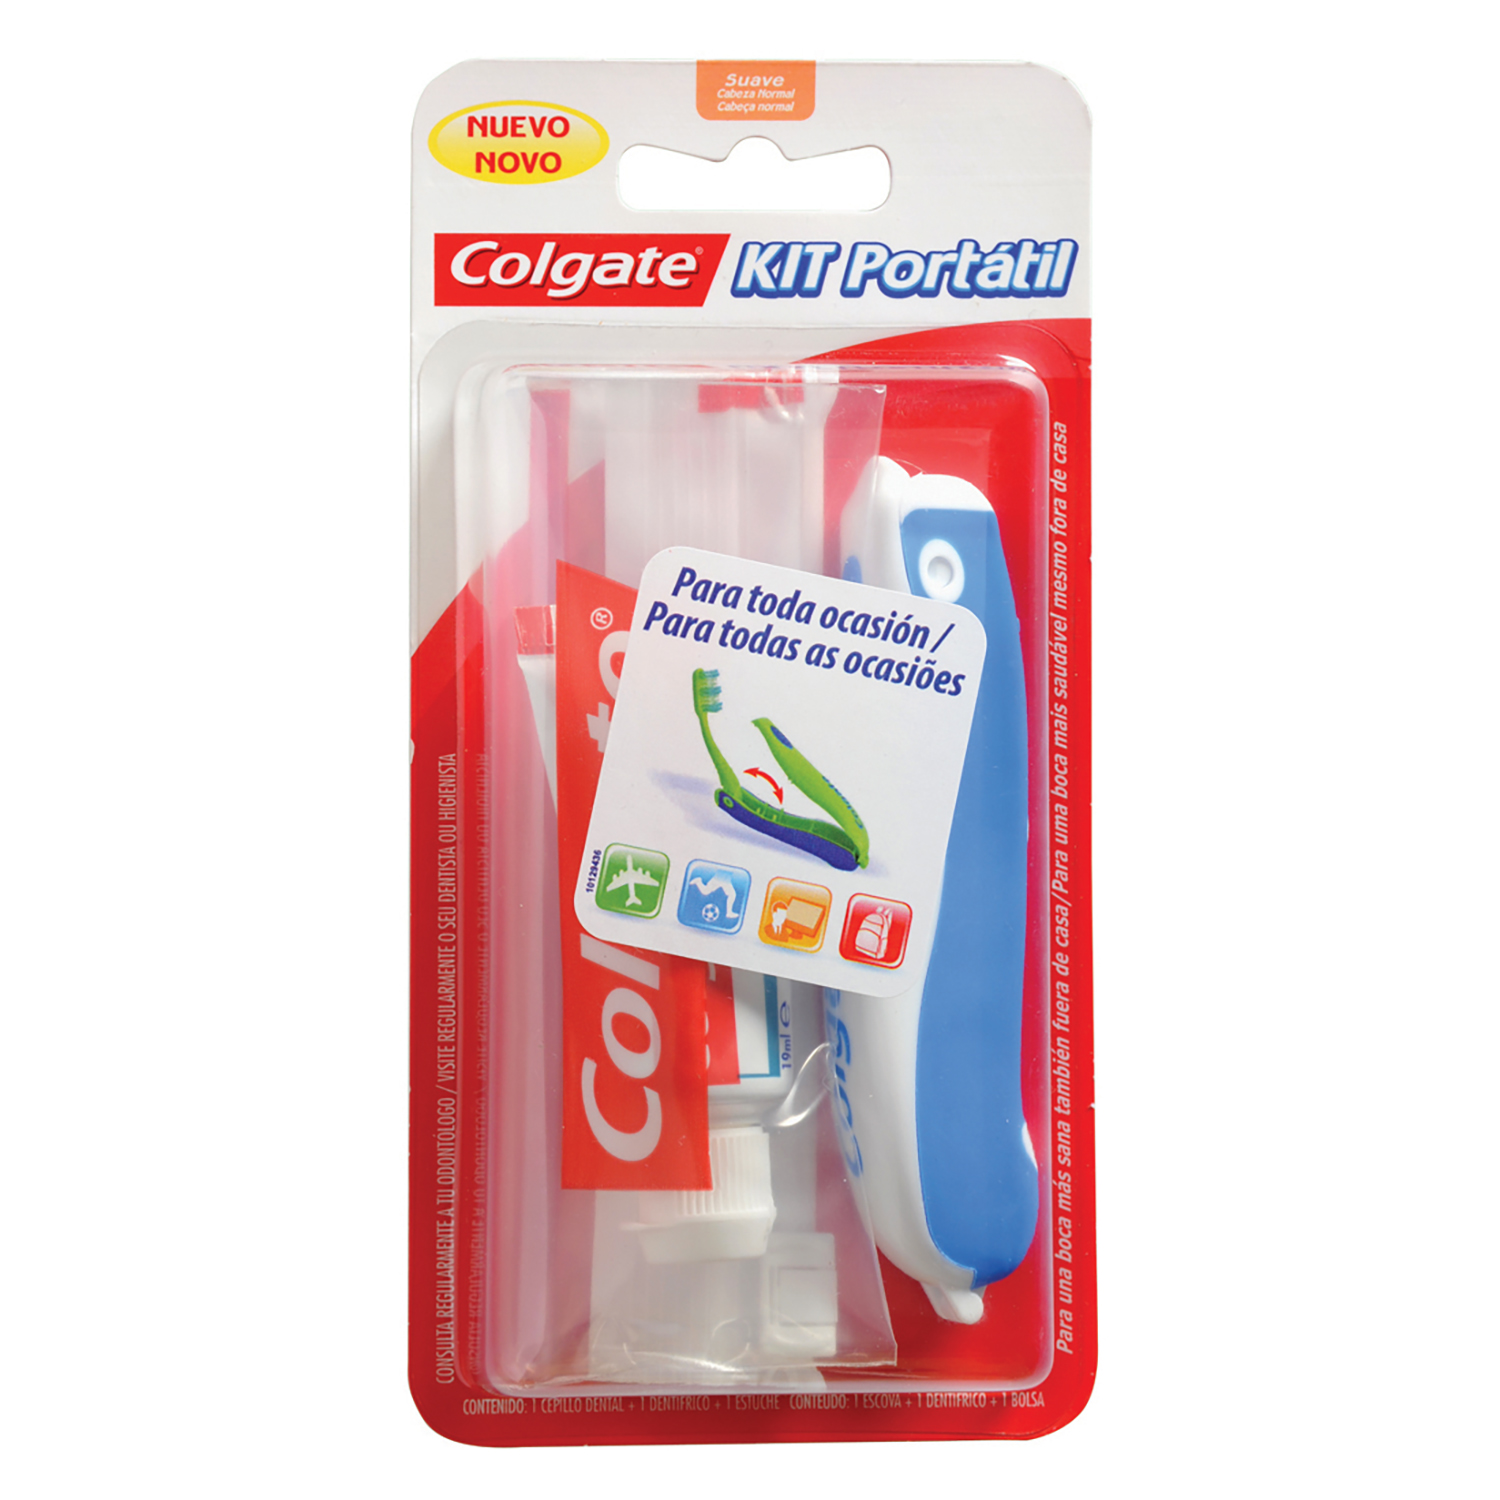 Pack Bucal de Viaje Neceser+Pasta Dental+Cepillo Dental Colgate 1 ud.